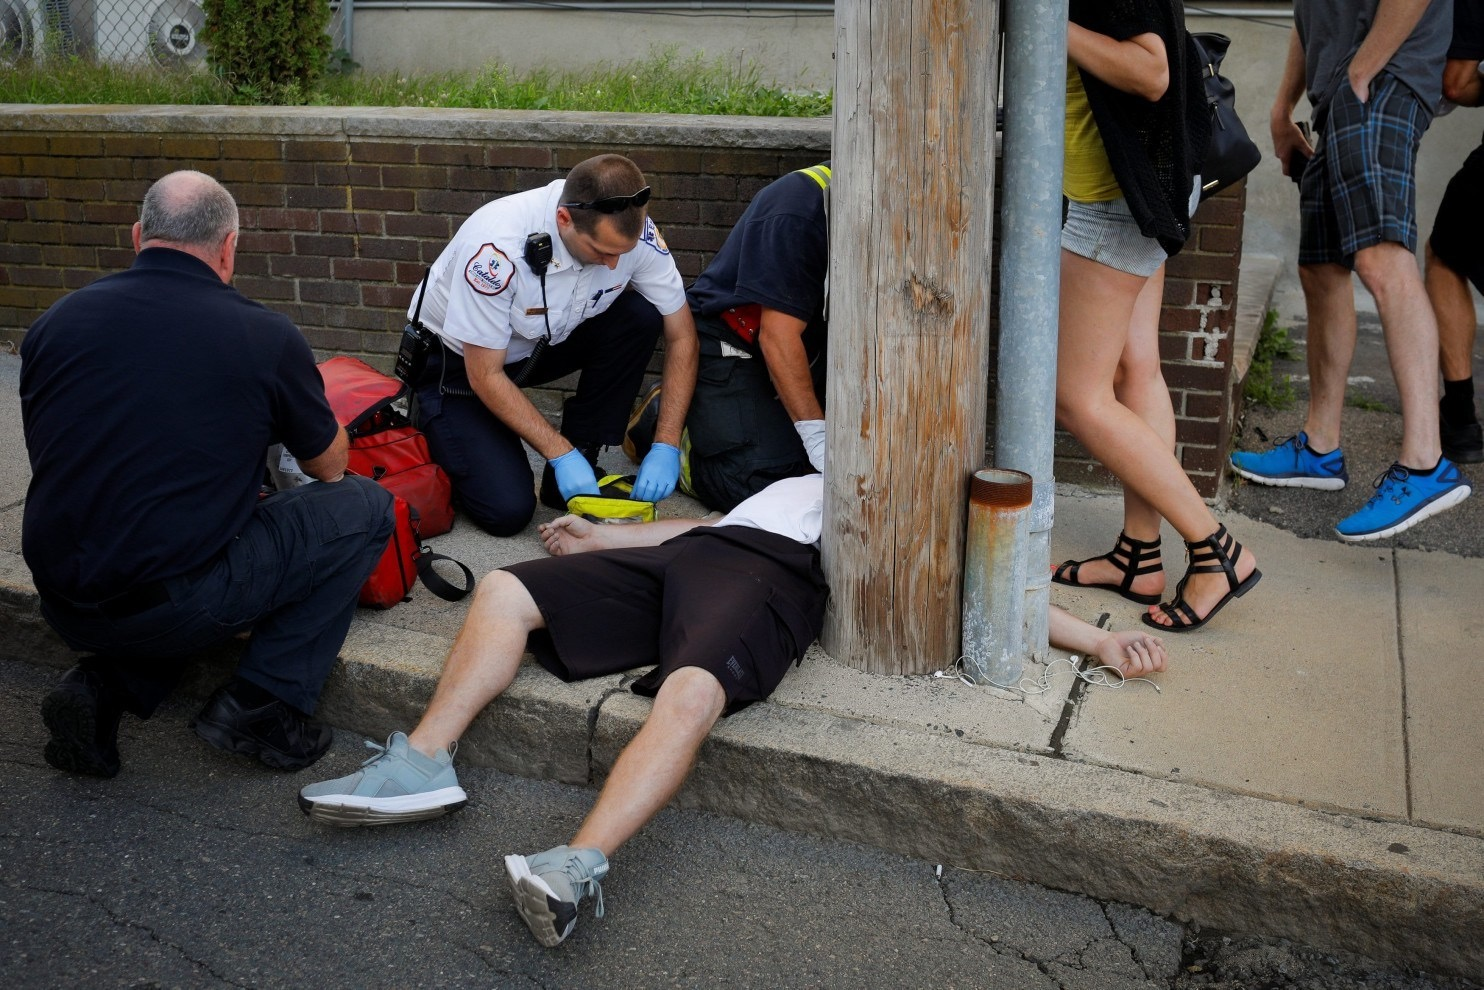 First Responders Revive a Man after an Opioid Overdose. (Source: Brian Snyder/Reuters)